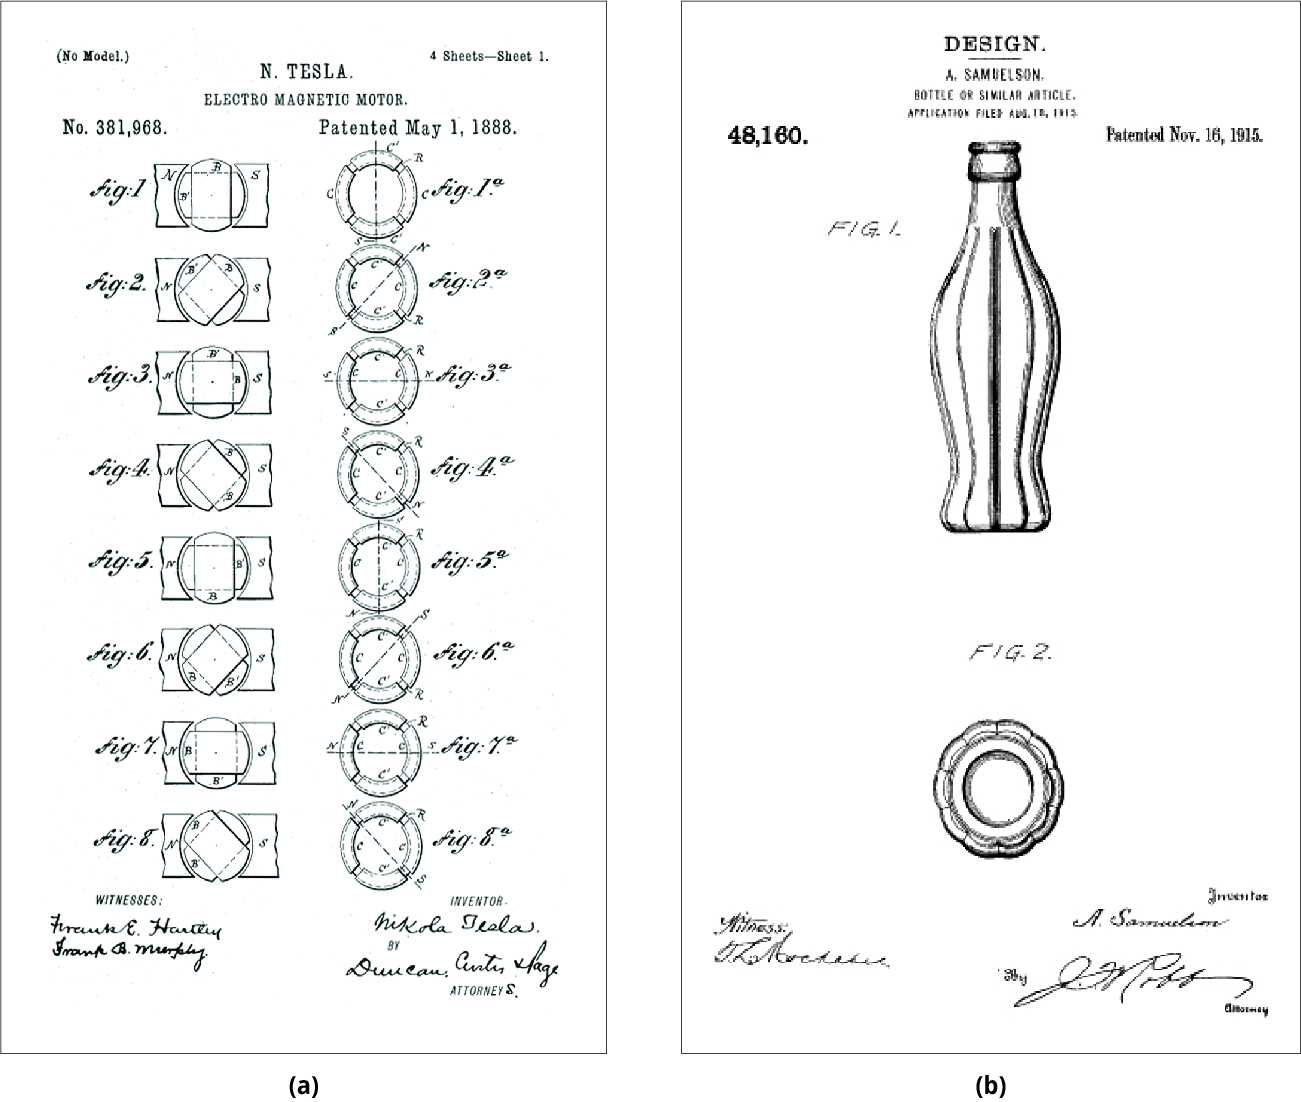 In (a), a drawing of different views of an alternating-current motor. In (b), drawings of the front view and top-down view of a soft drink bottle.